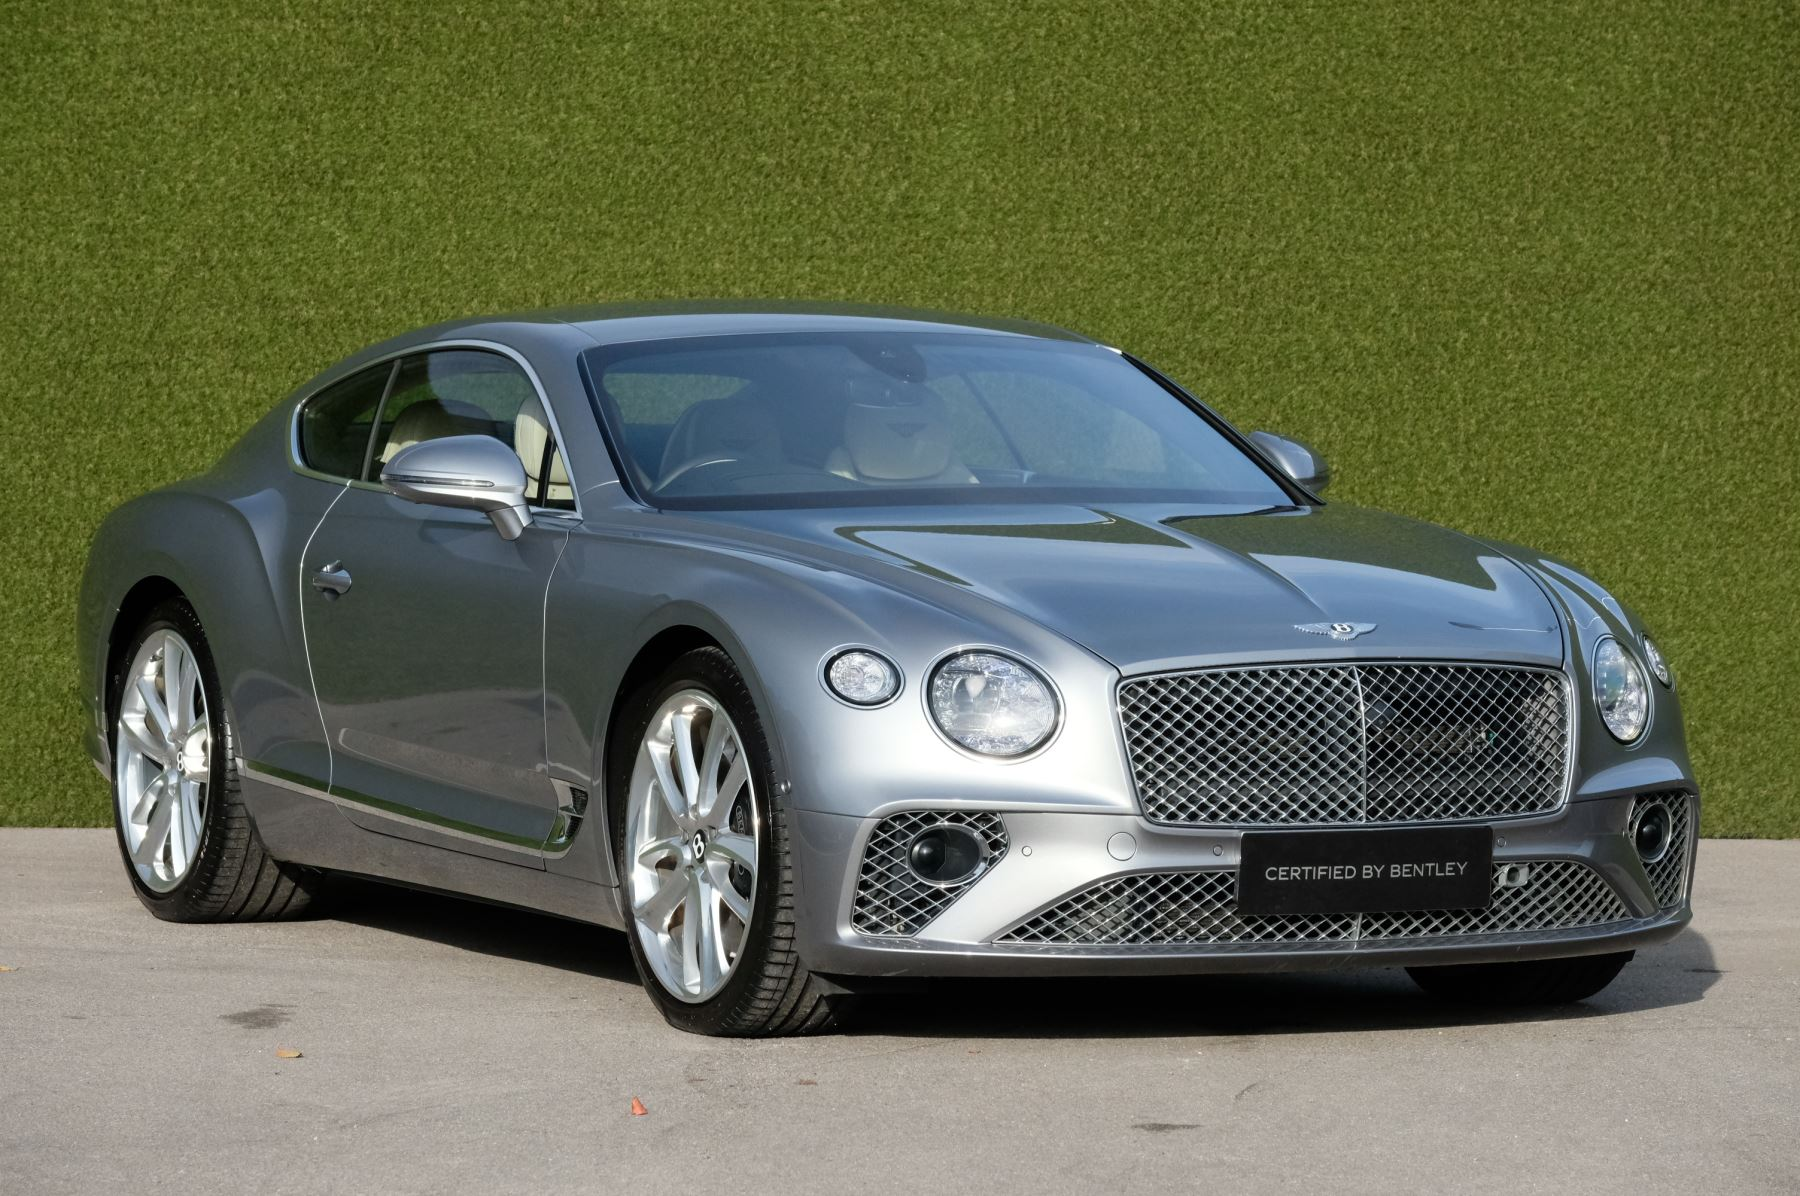 Bentley Continental GT 0.0 6.0 W12 2dr Mulliner Driving Specification Coupe Petrol Hallmark Grey